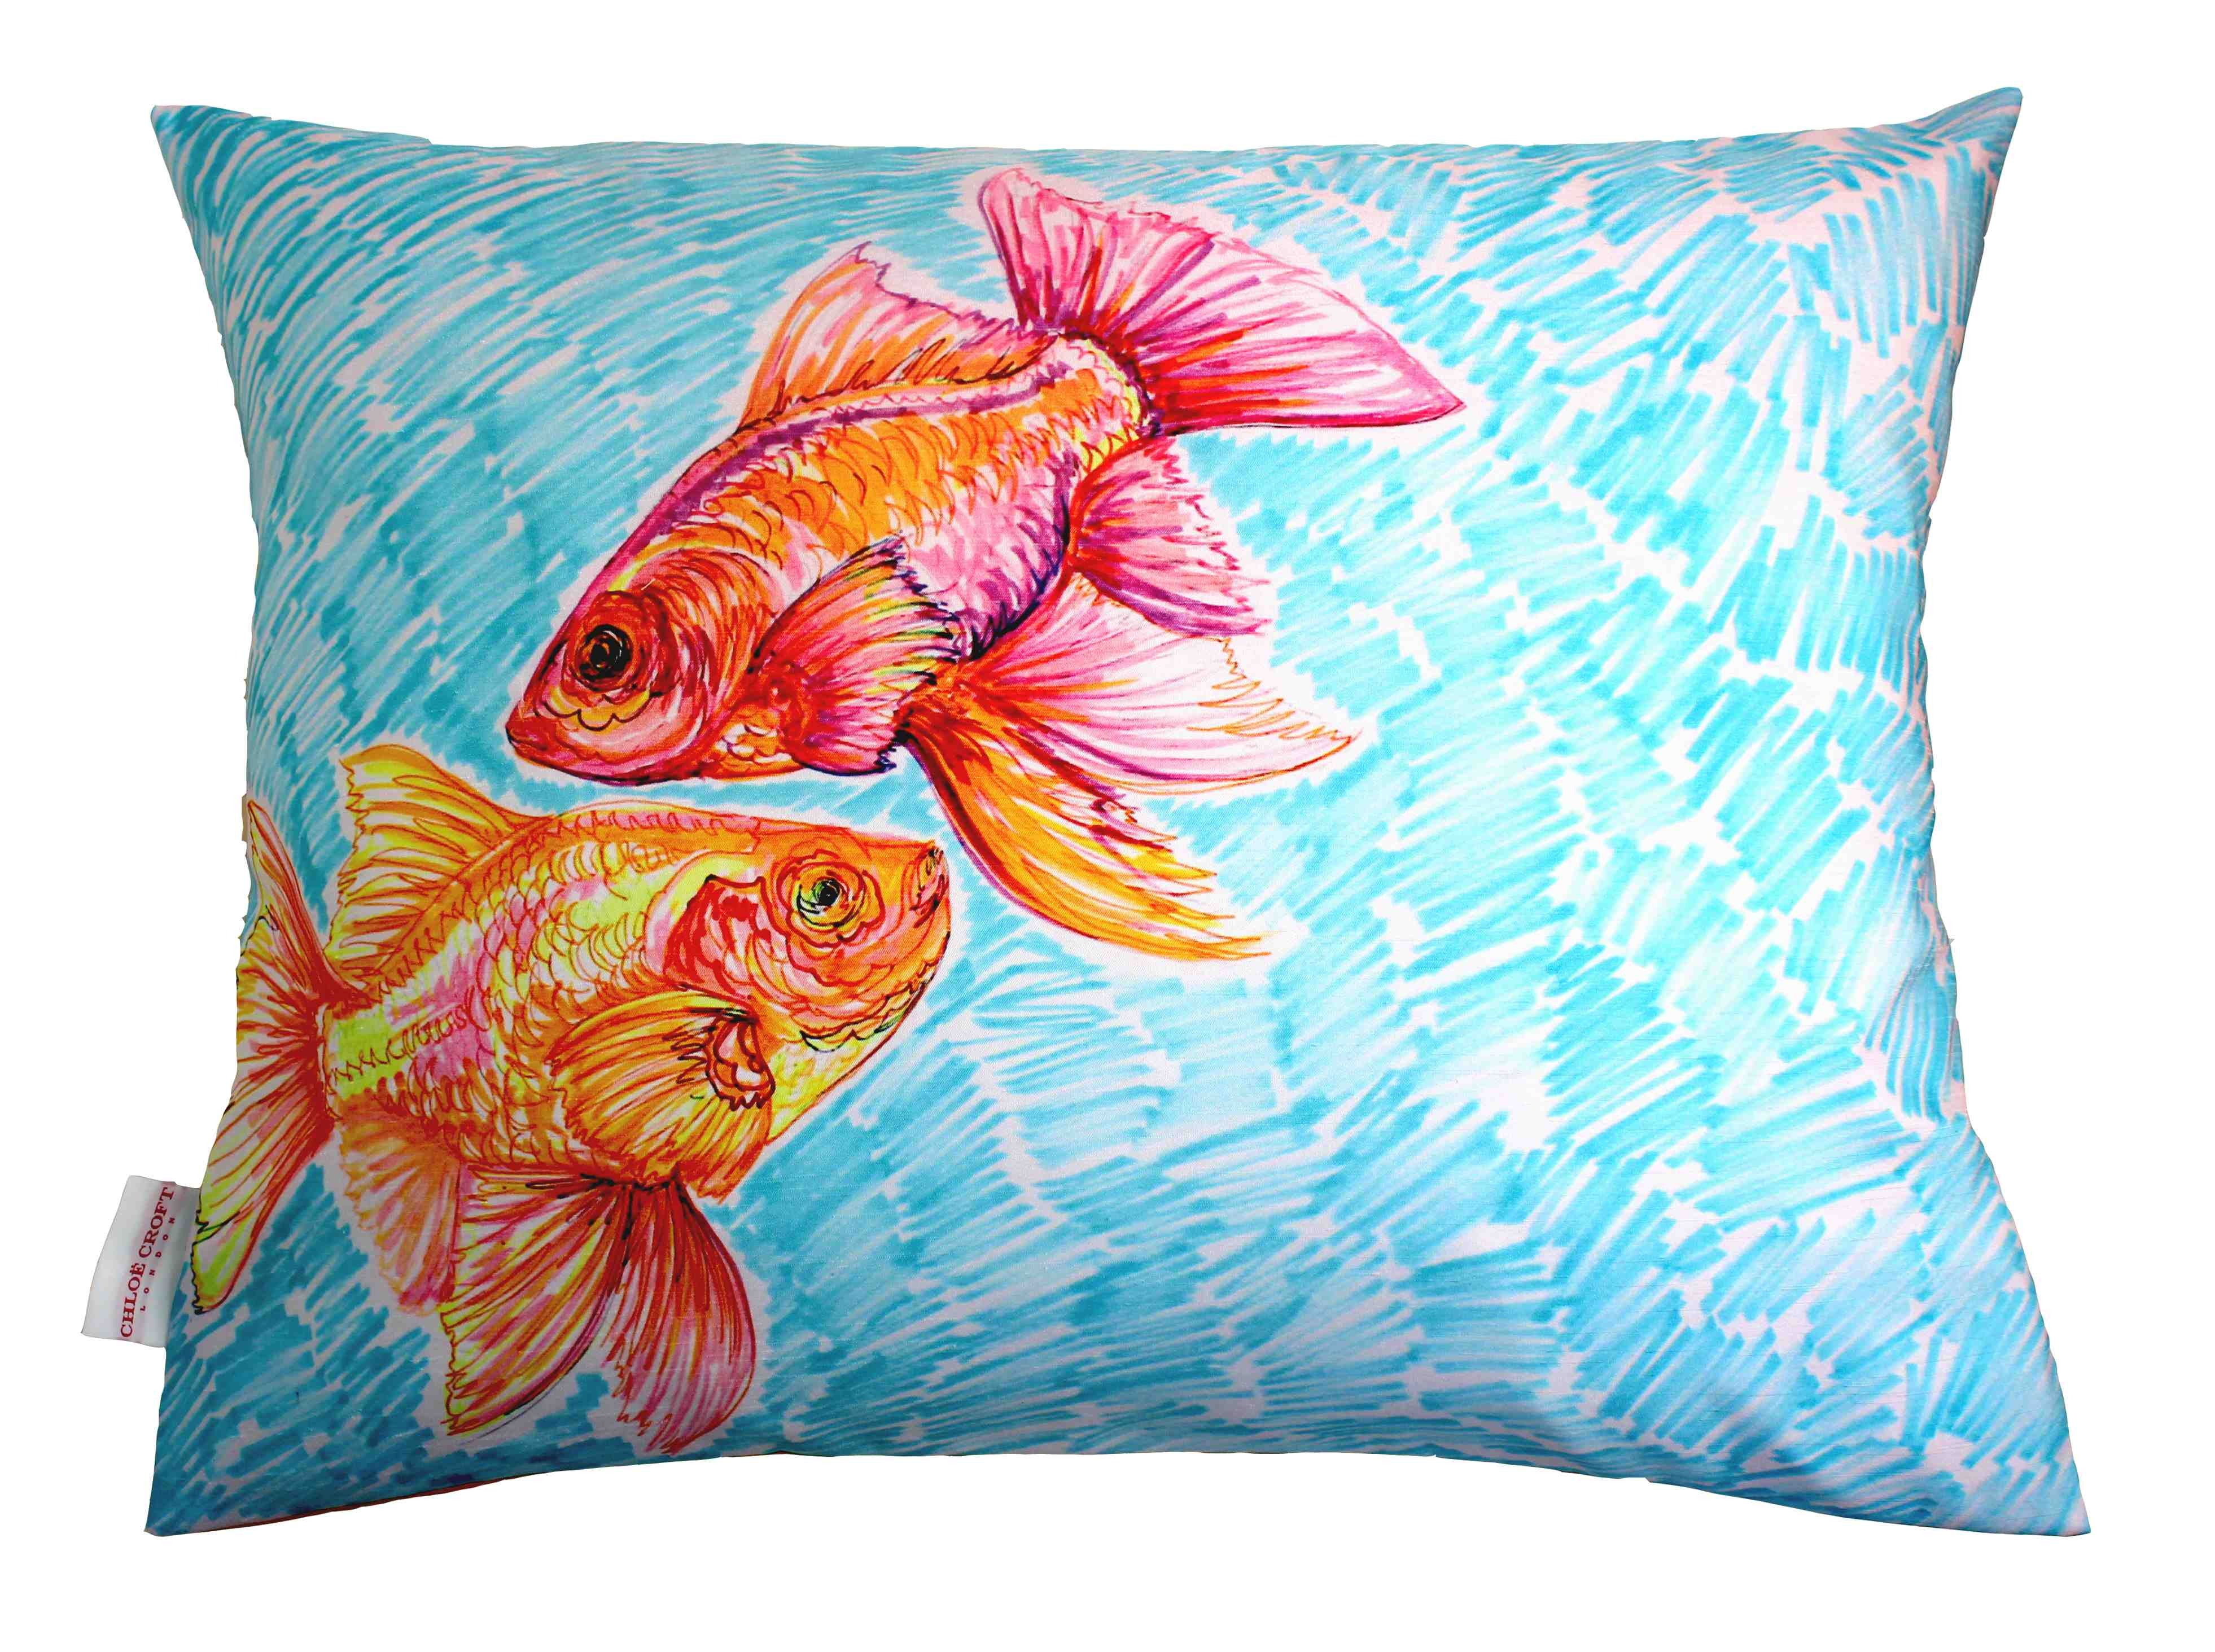 Gorgeous goldfish cushion